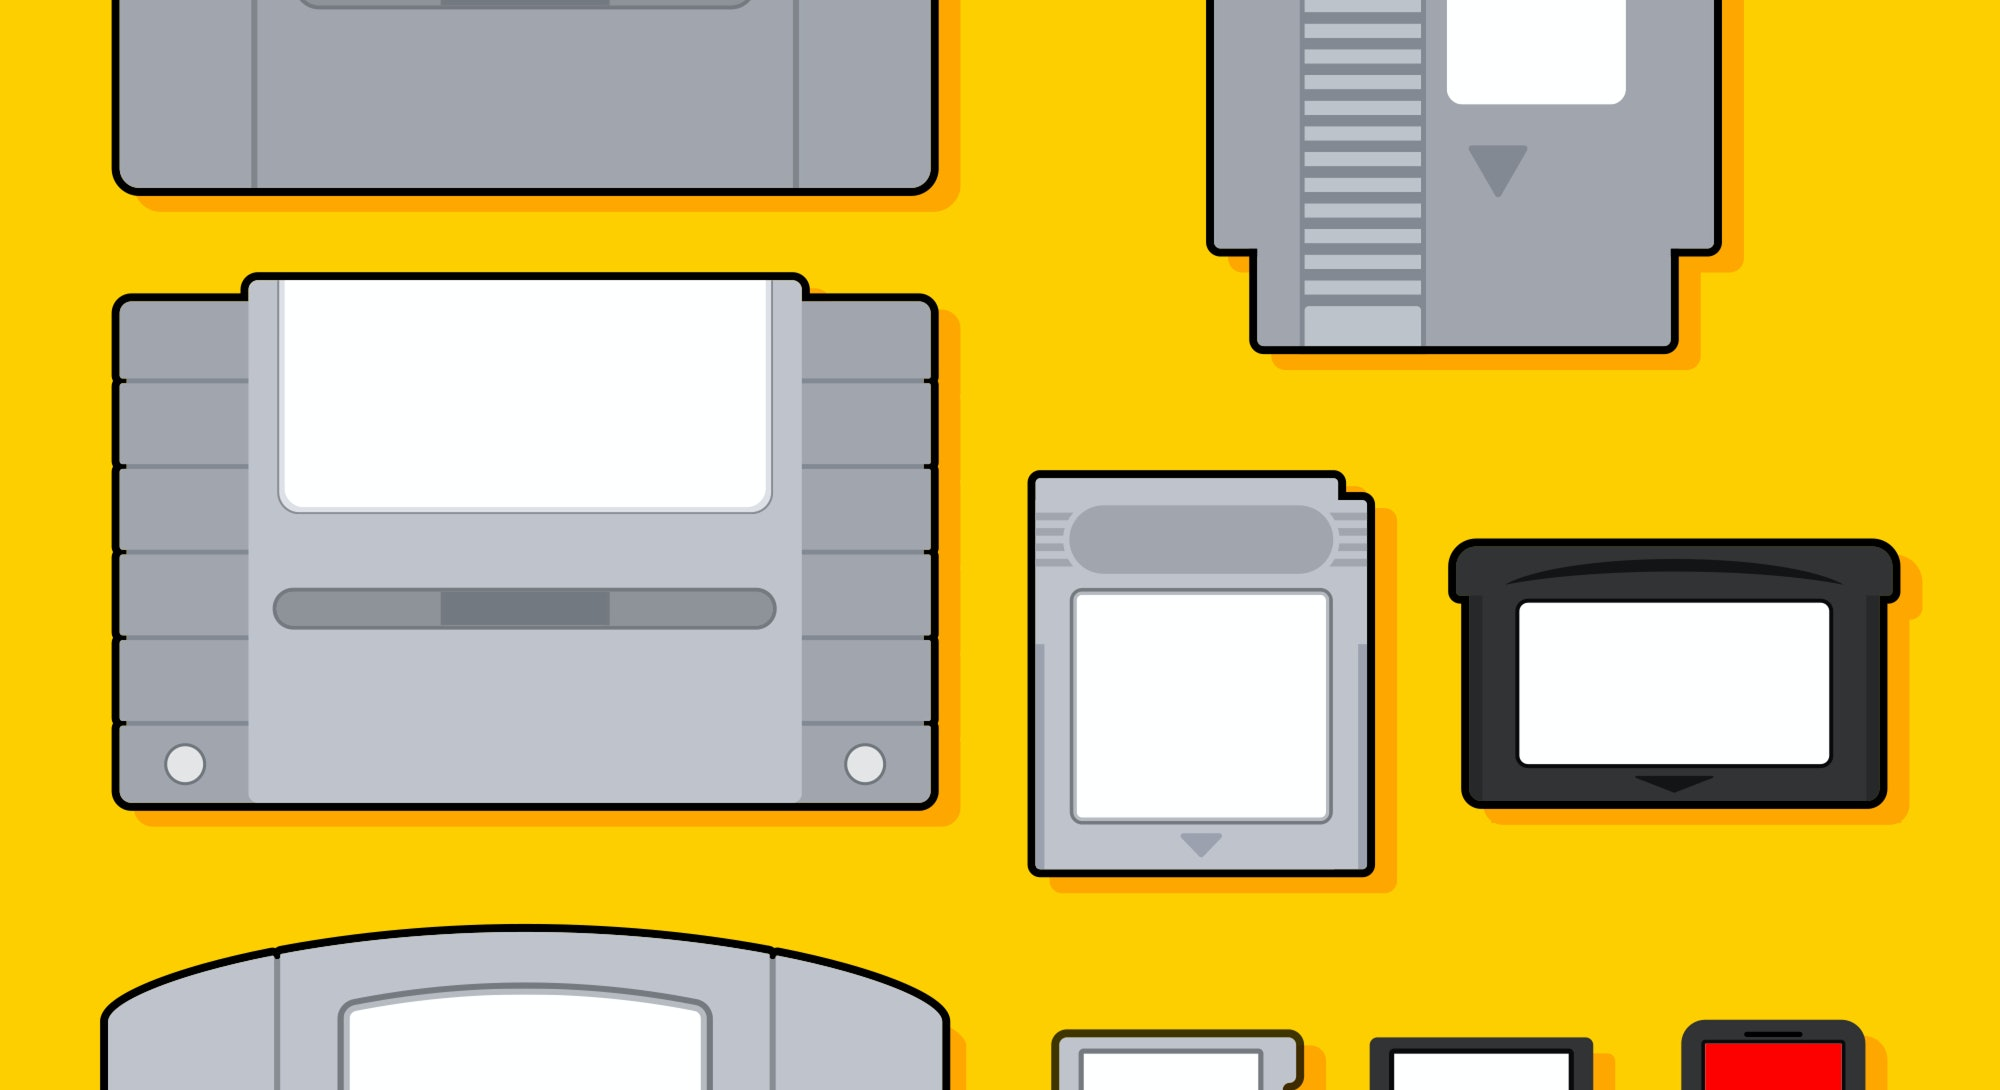 Collection of video game cartridges. Evolution of game cartridges. Entertainment media technology fo...